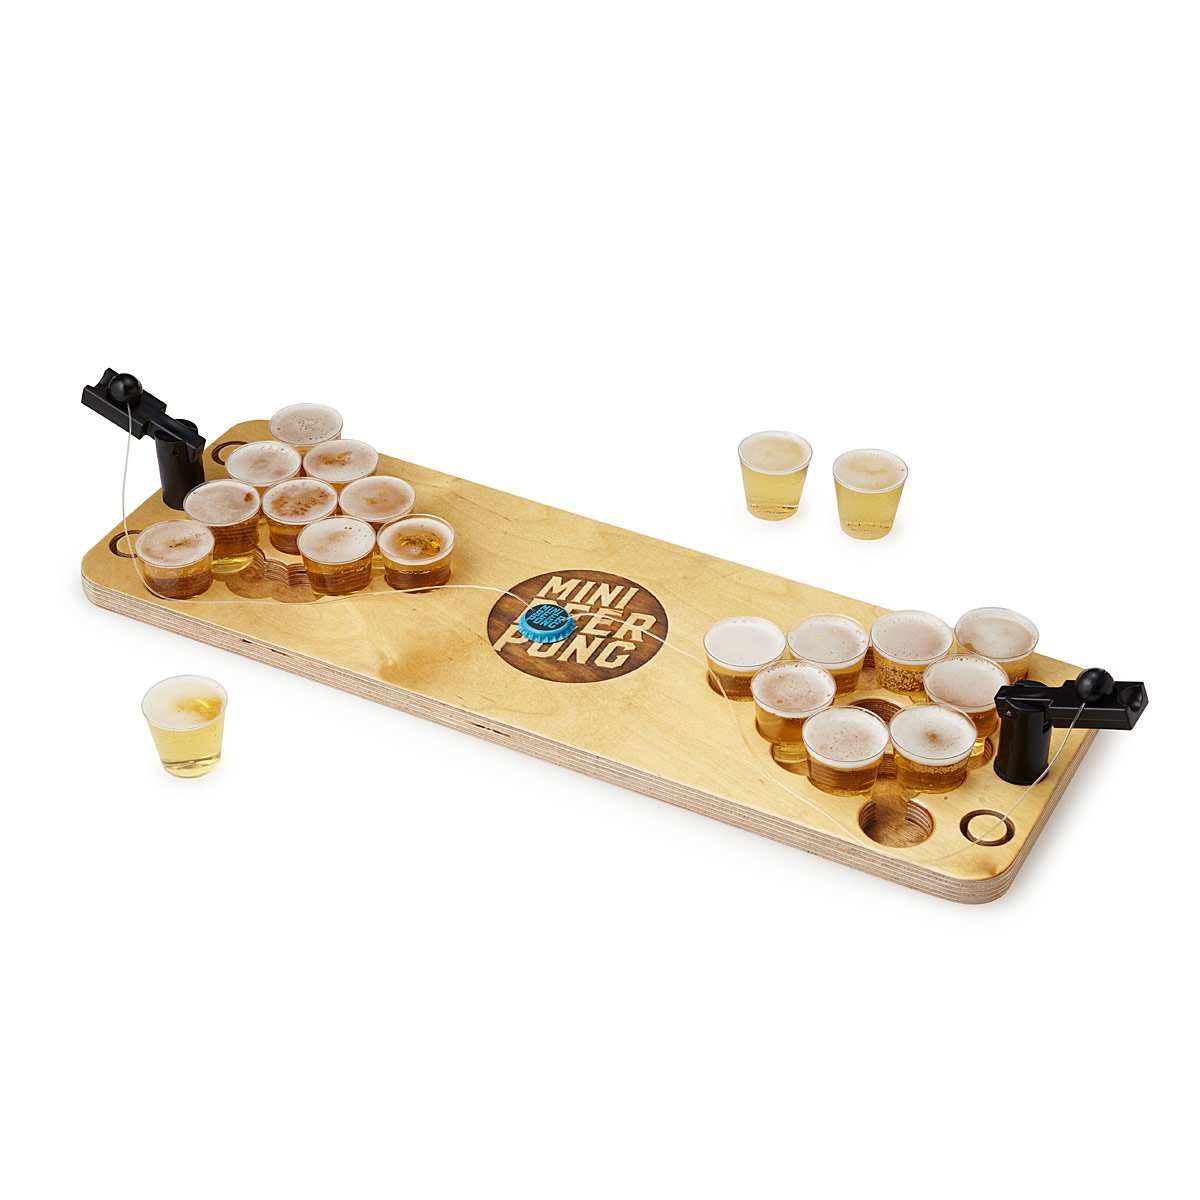 YASSSSS, take that man back to his college days with this Mini Beer Pong. A dorm room classic grows up in this mini version of beer pong that sports catapults and a birch wood base. $60.00  (Image: Uncommongoods)